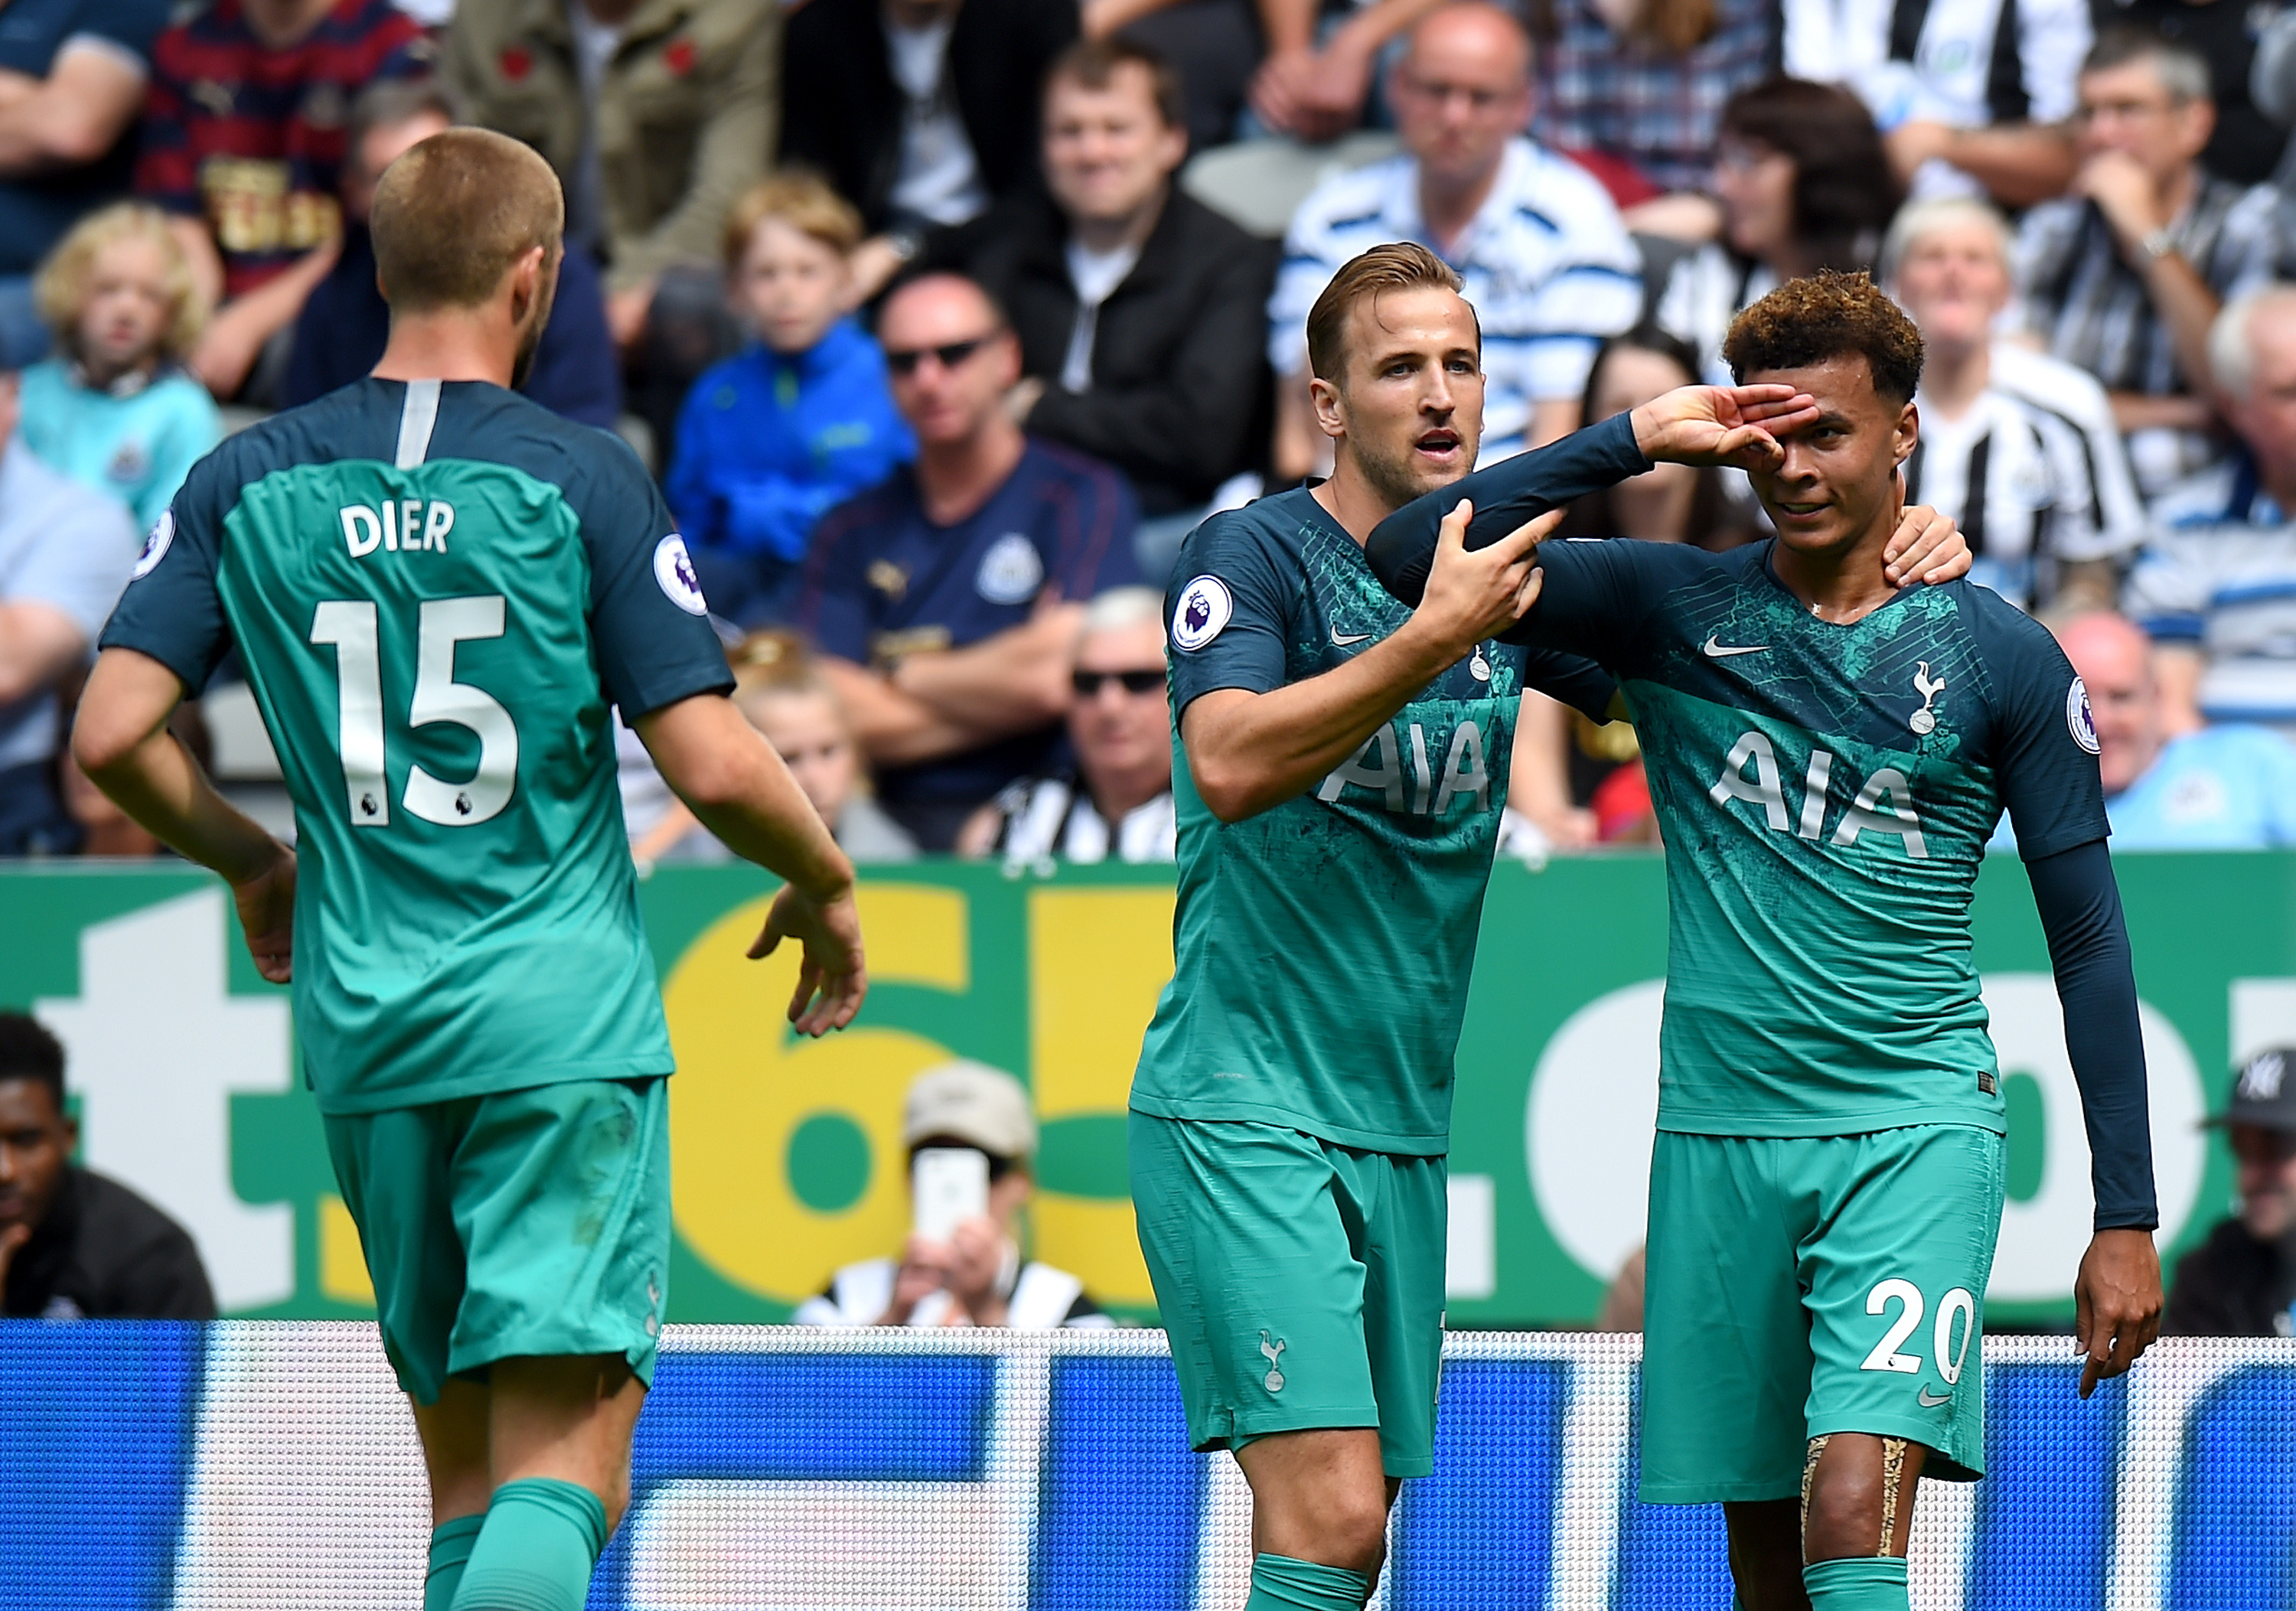 Newcastle United V Tottenham Hotspur Premier League